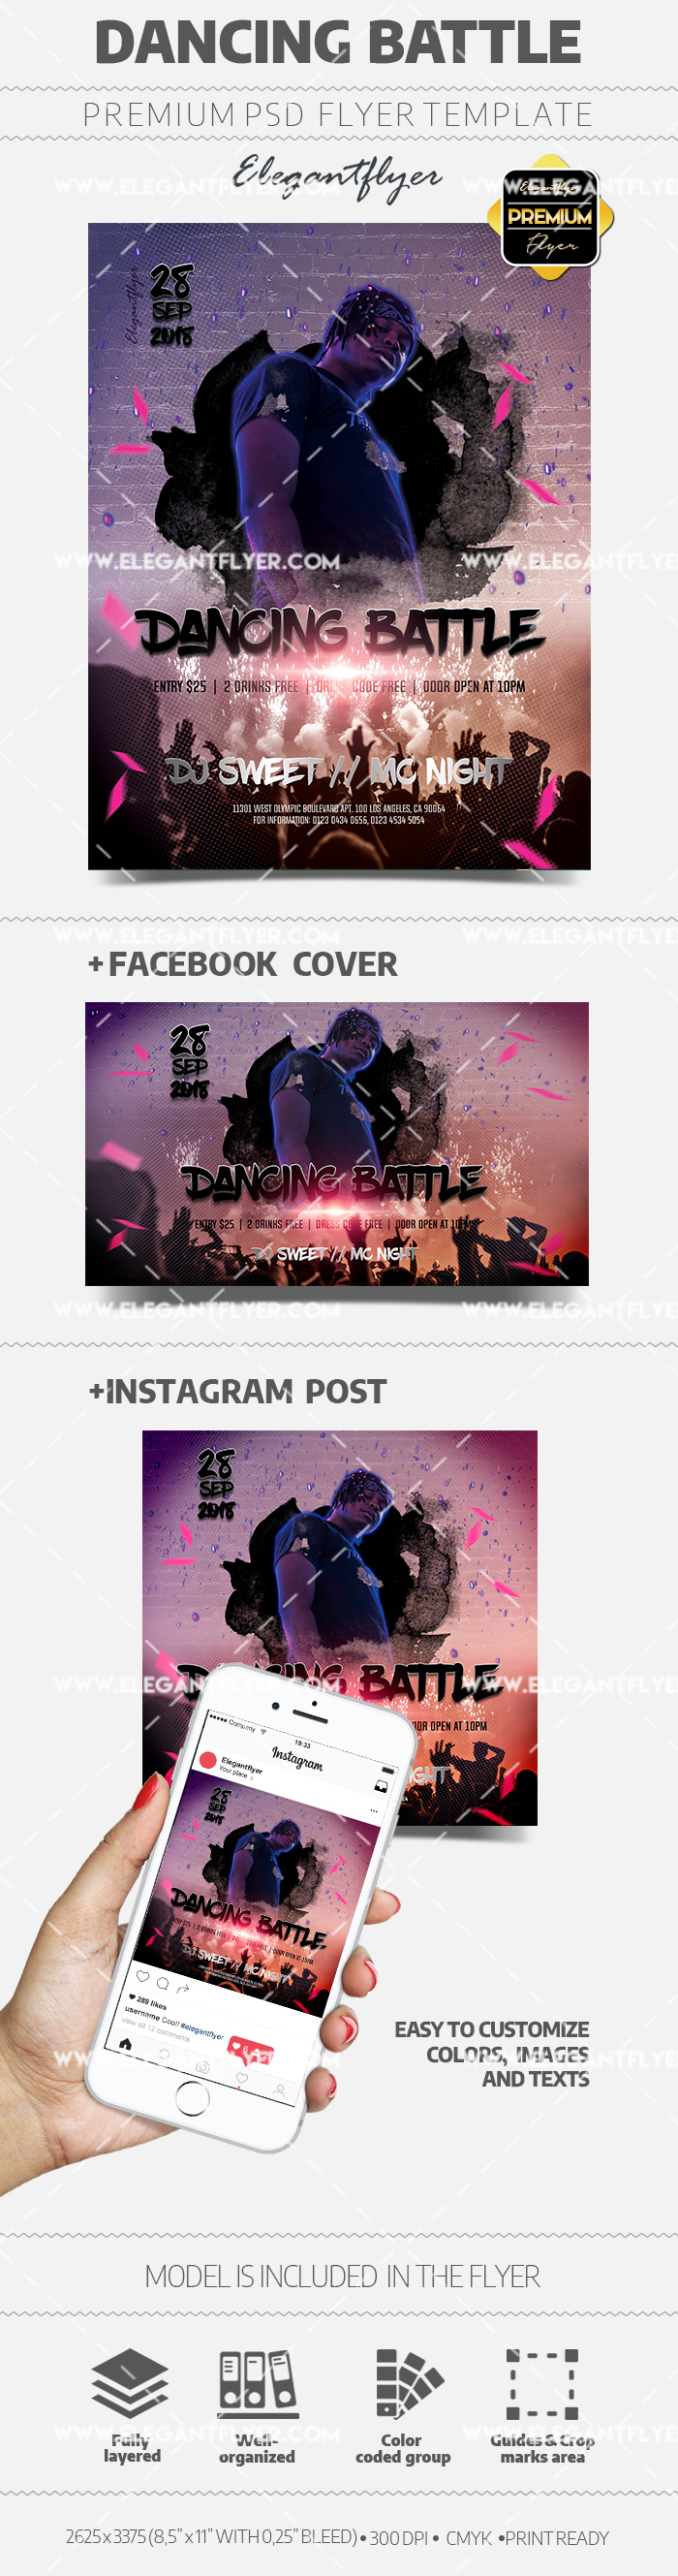 Dancing Battle – PSD Flyer Template + Facebook Cover + Instagram Post